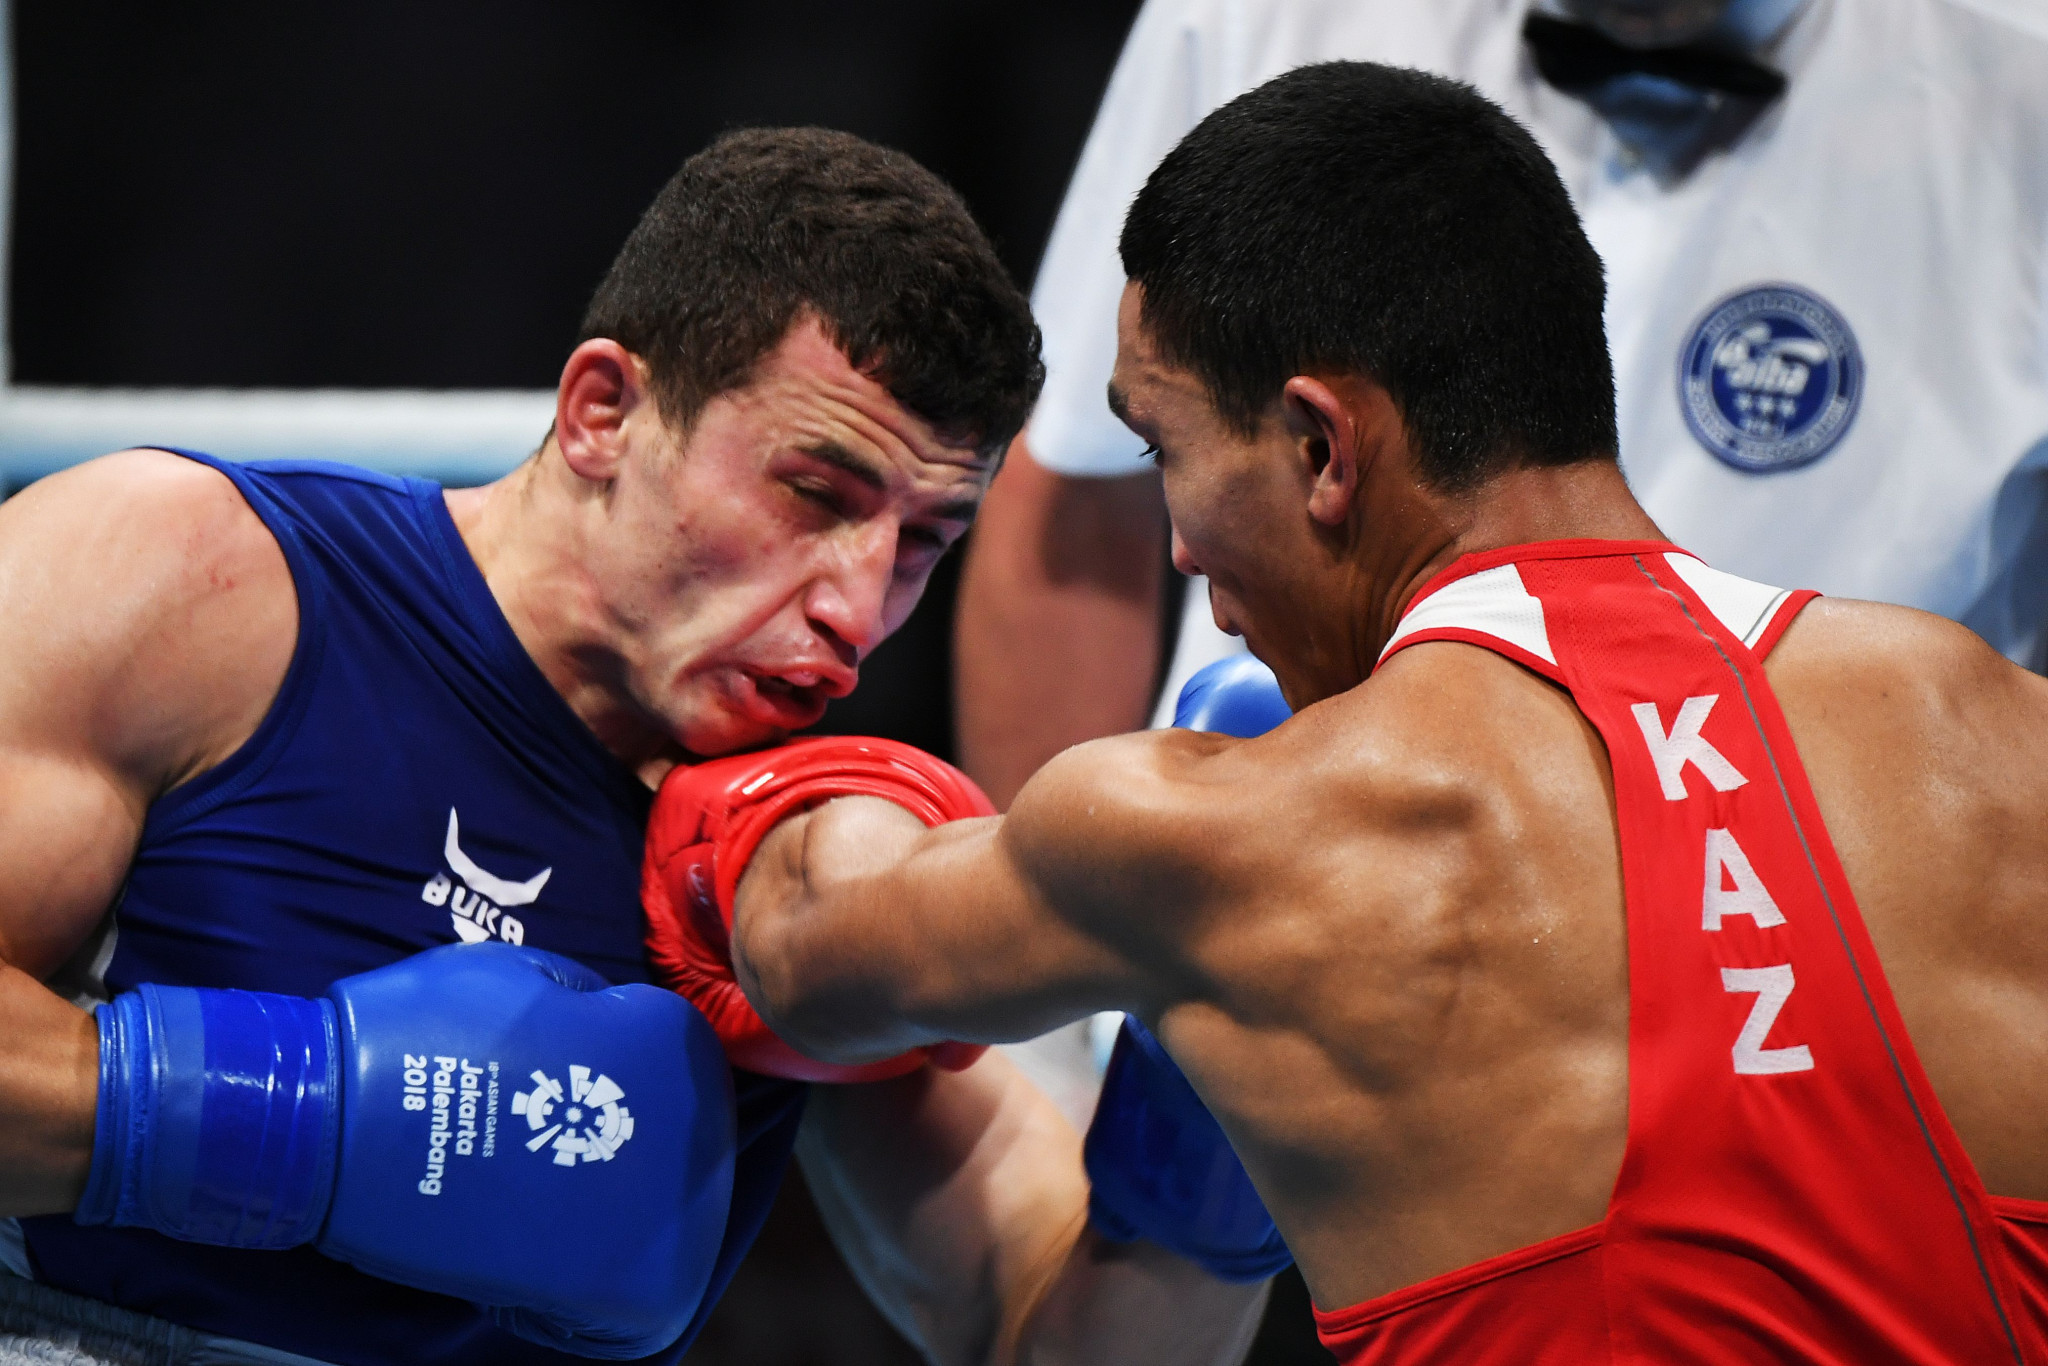 Defending middleweight champion Madrimov crashes out at ASBC Elite Boxing Championships